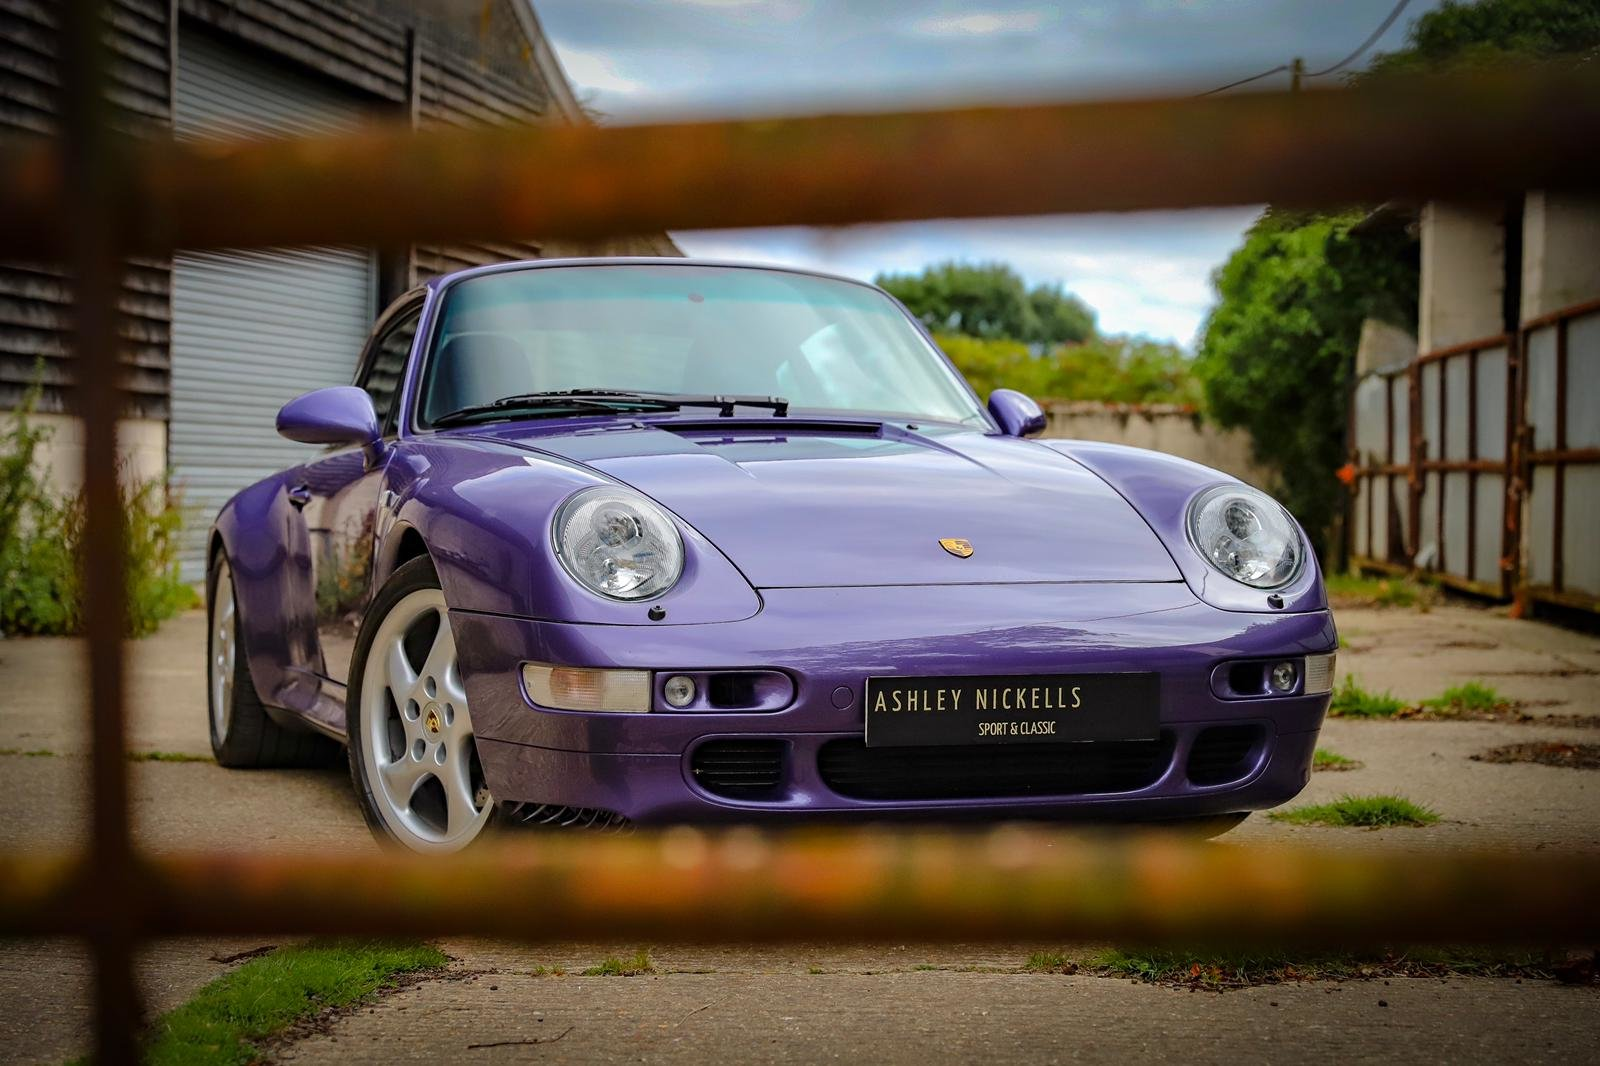 1998 RARE 993 LOW MILEAGE MANUAL C 4S - SPECTACULAR VIOLET BLUE   For Sale (picture 4 of 6)